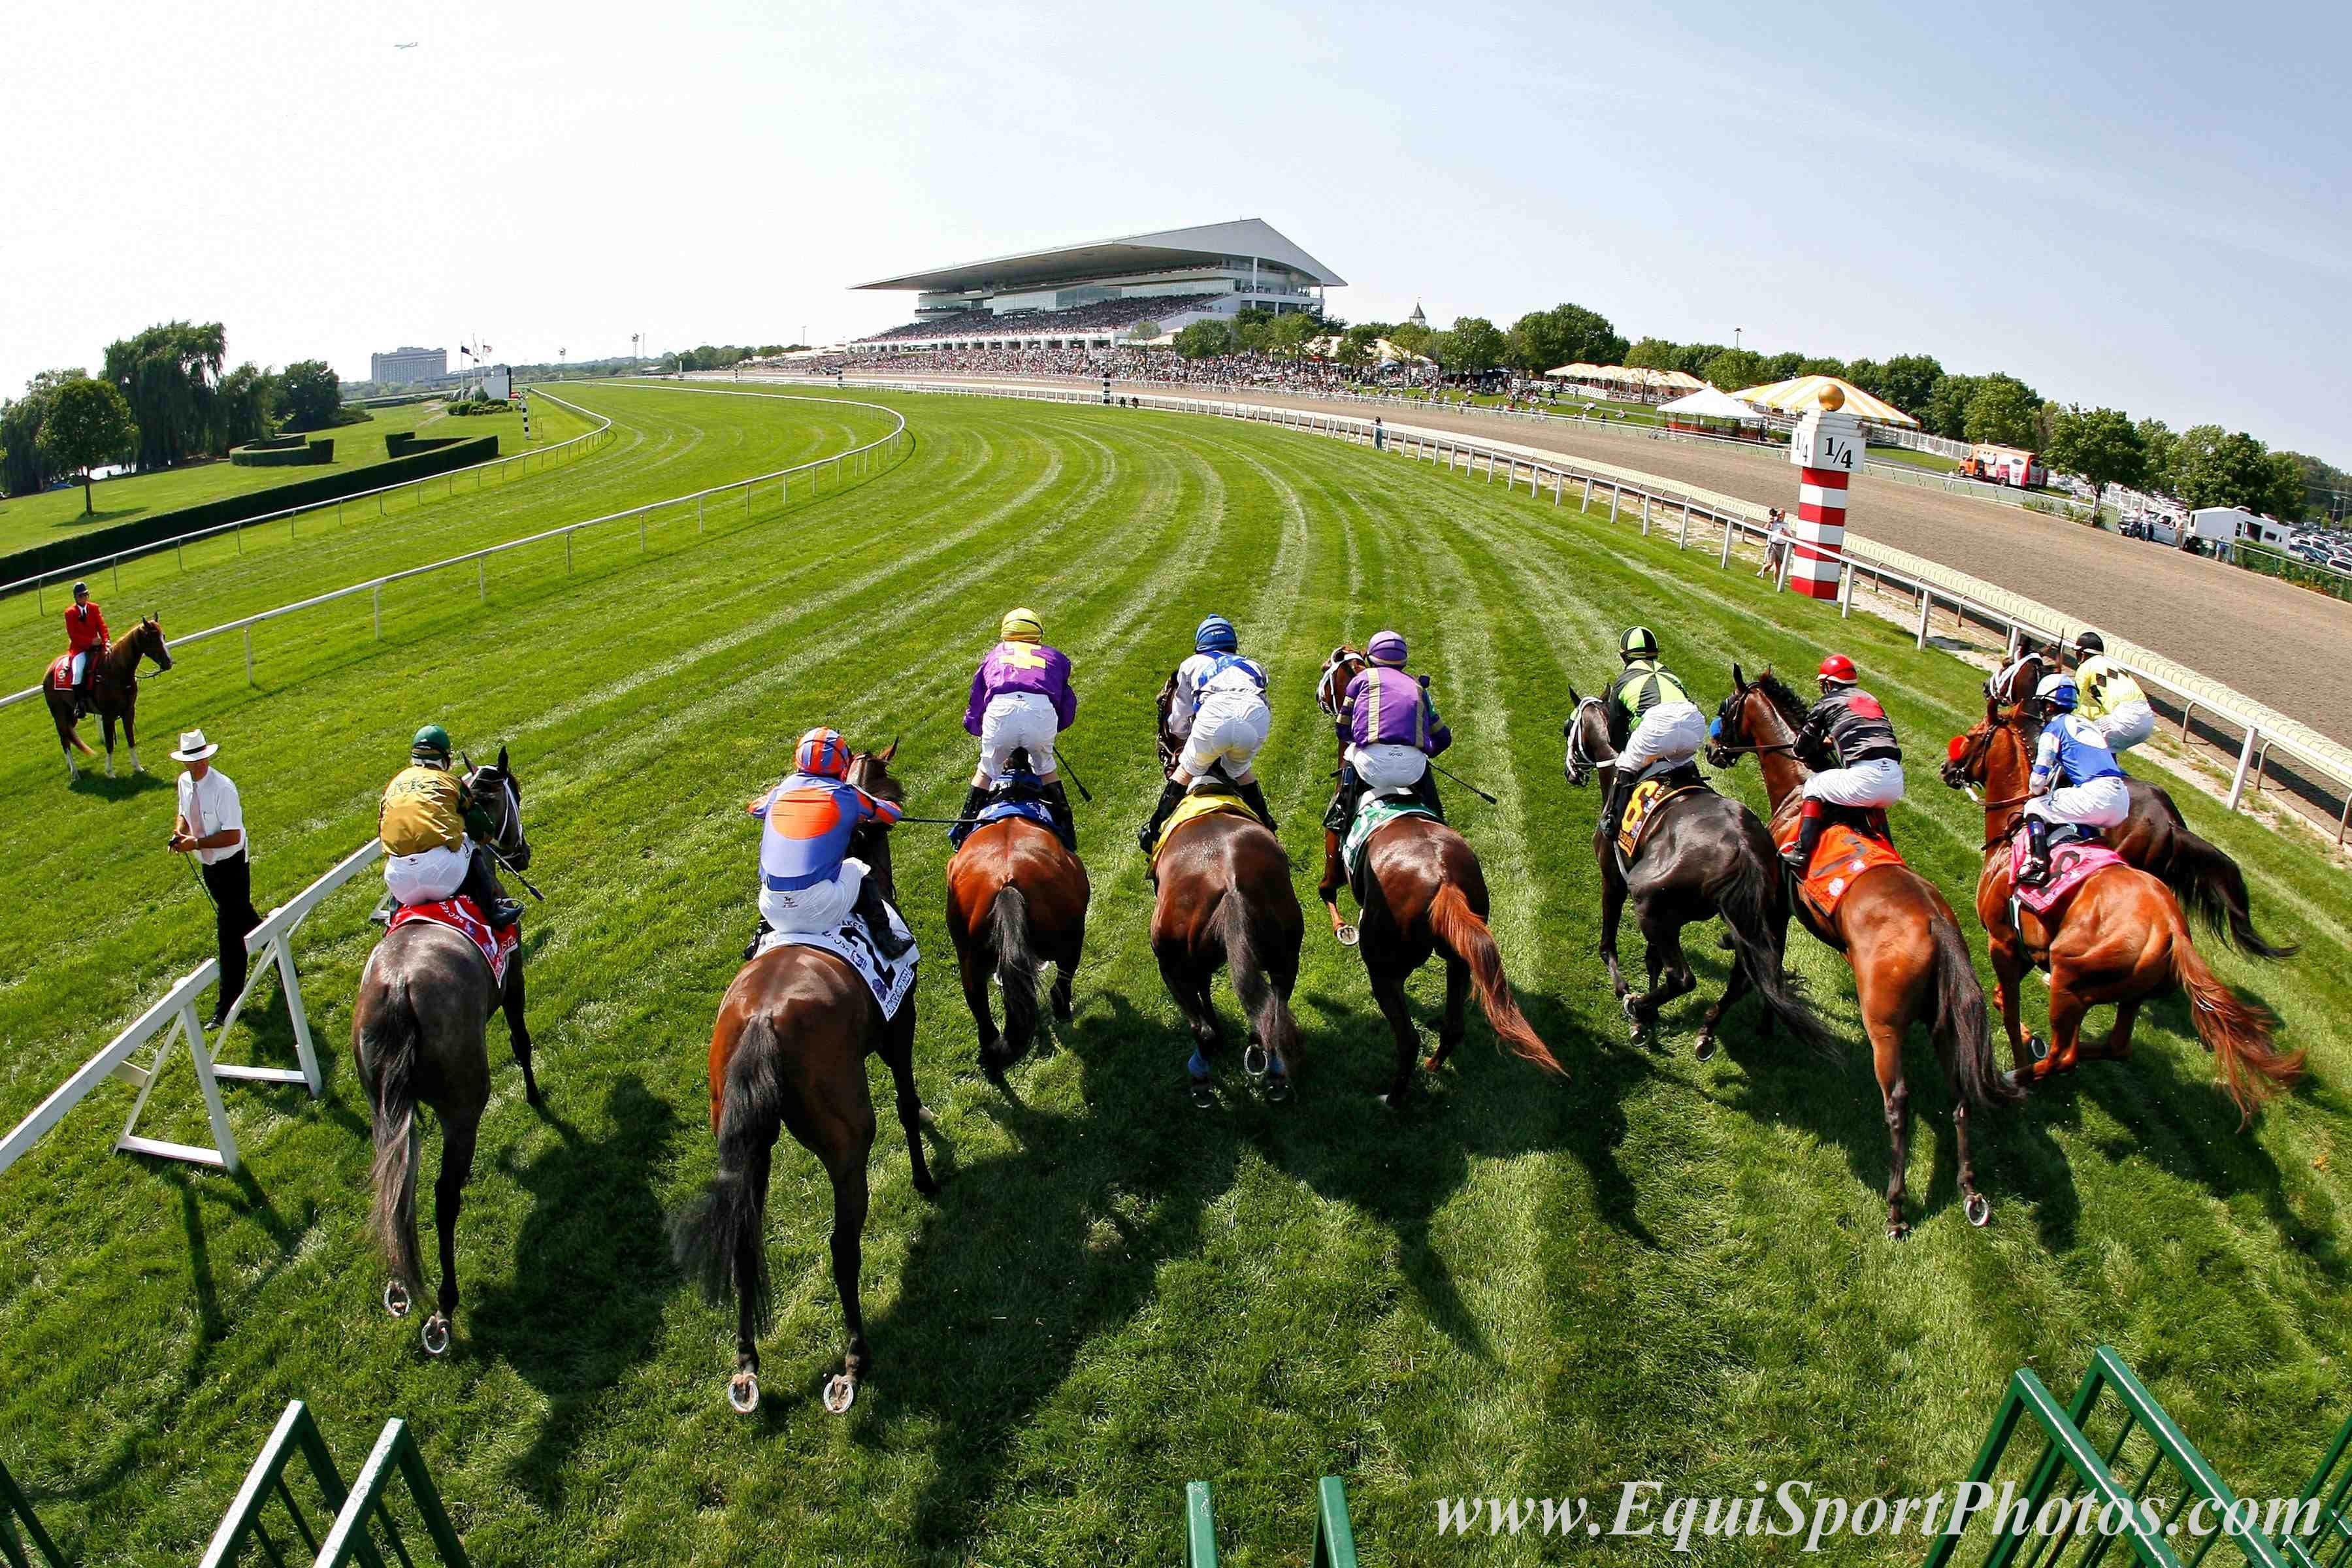 Arlington park off track betting locations buy and sell bitcoins on different exchanges with different